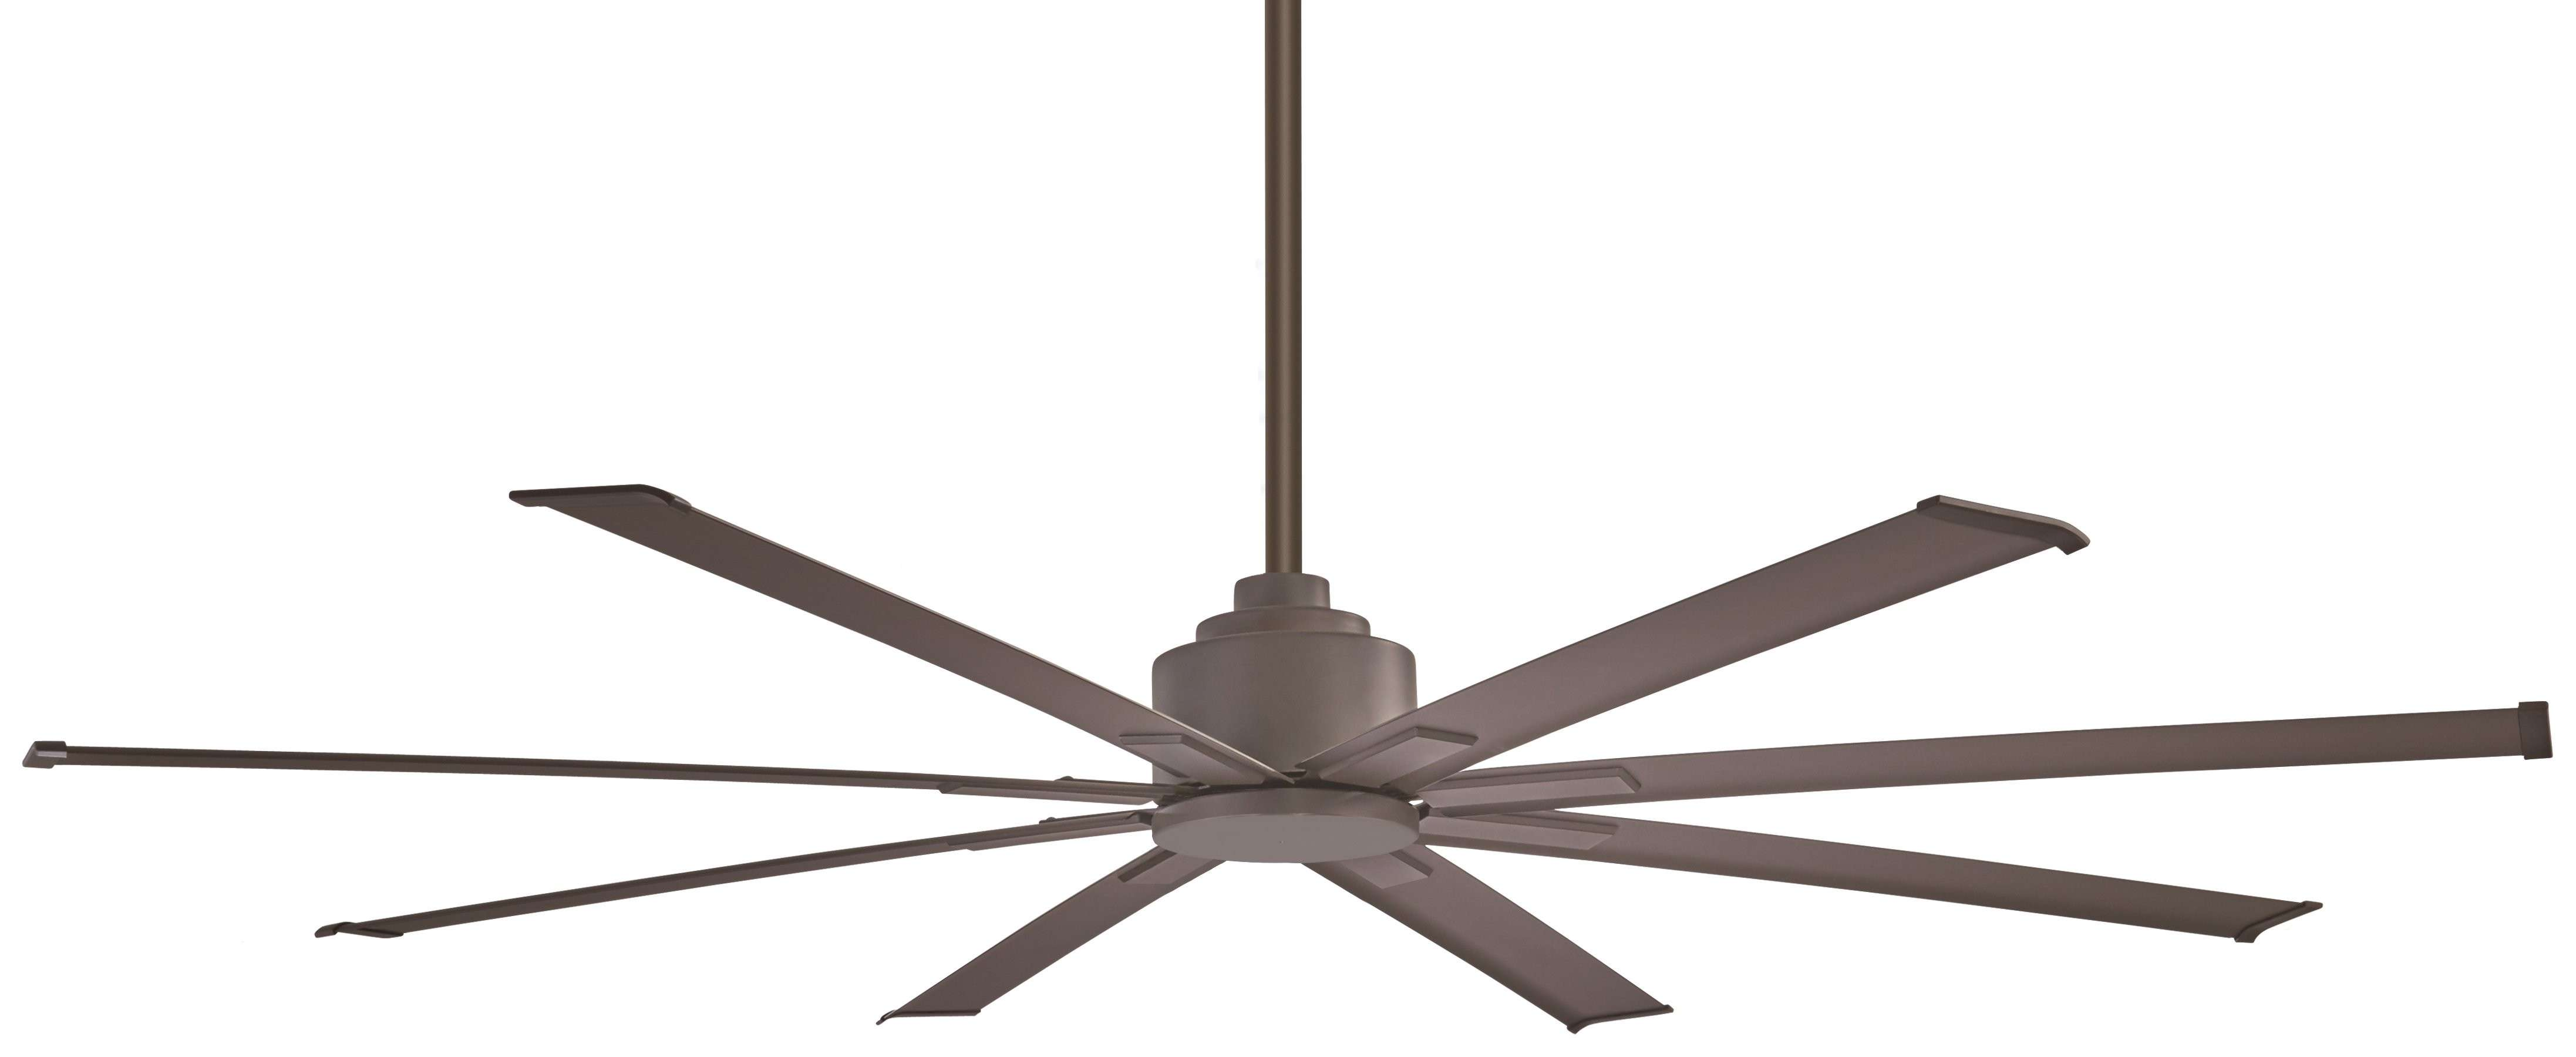 acero by mg minka bs fan aire bronze index ceiling